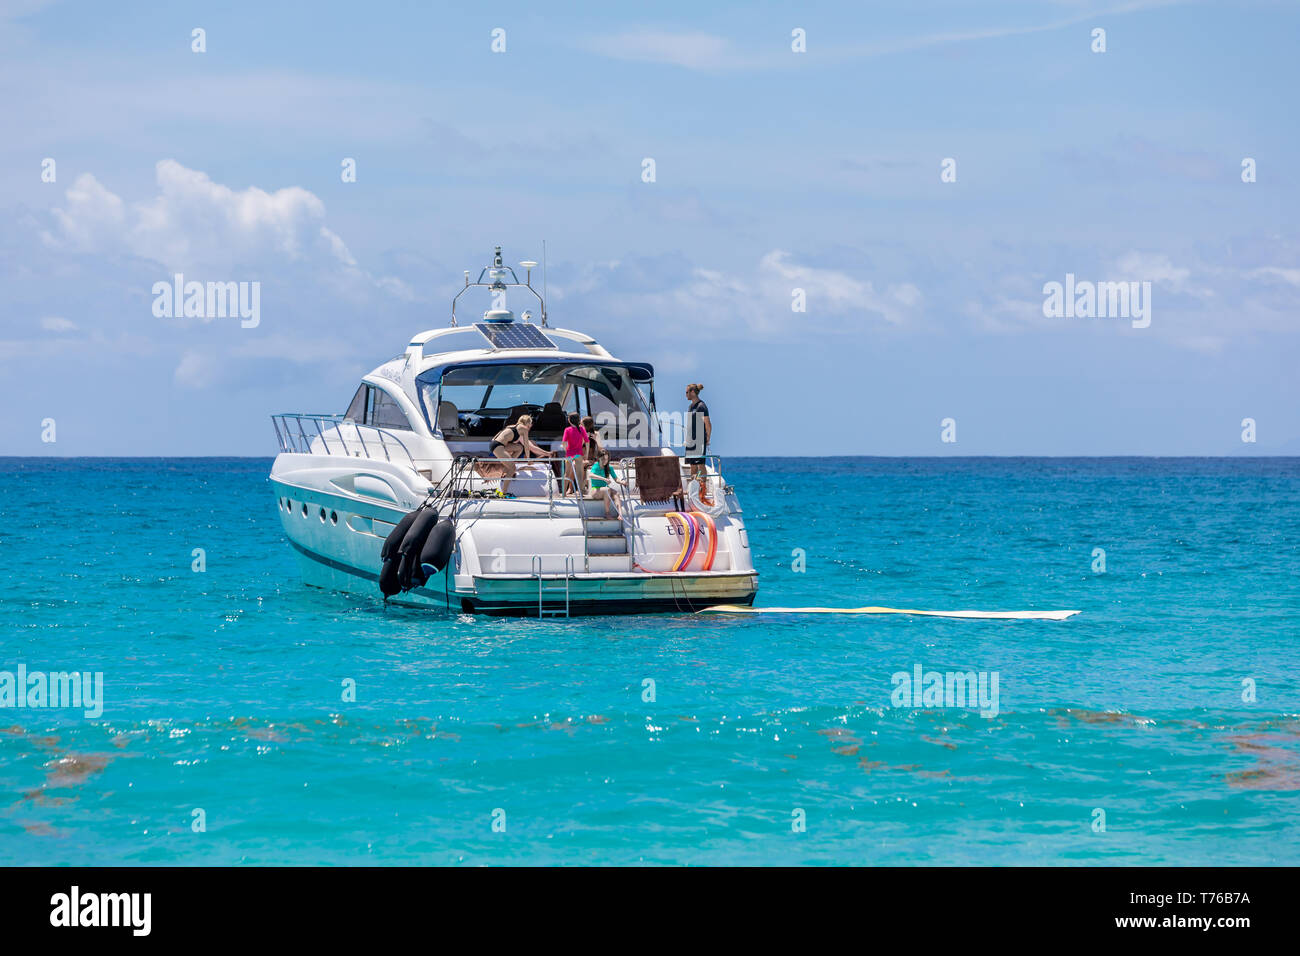 people on a boat at Saline Beach in St Bart's enjoying the day Stock Photo